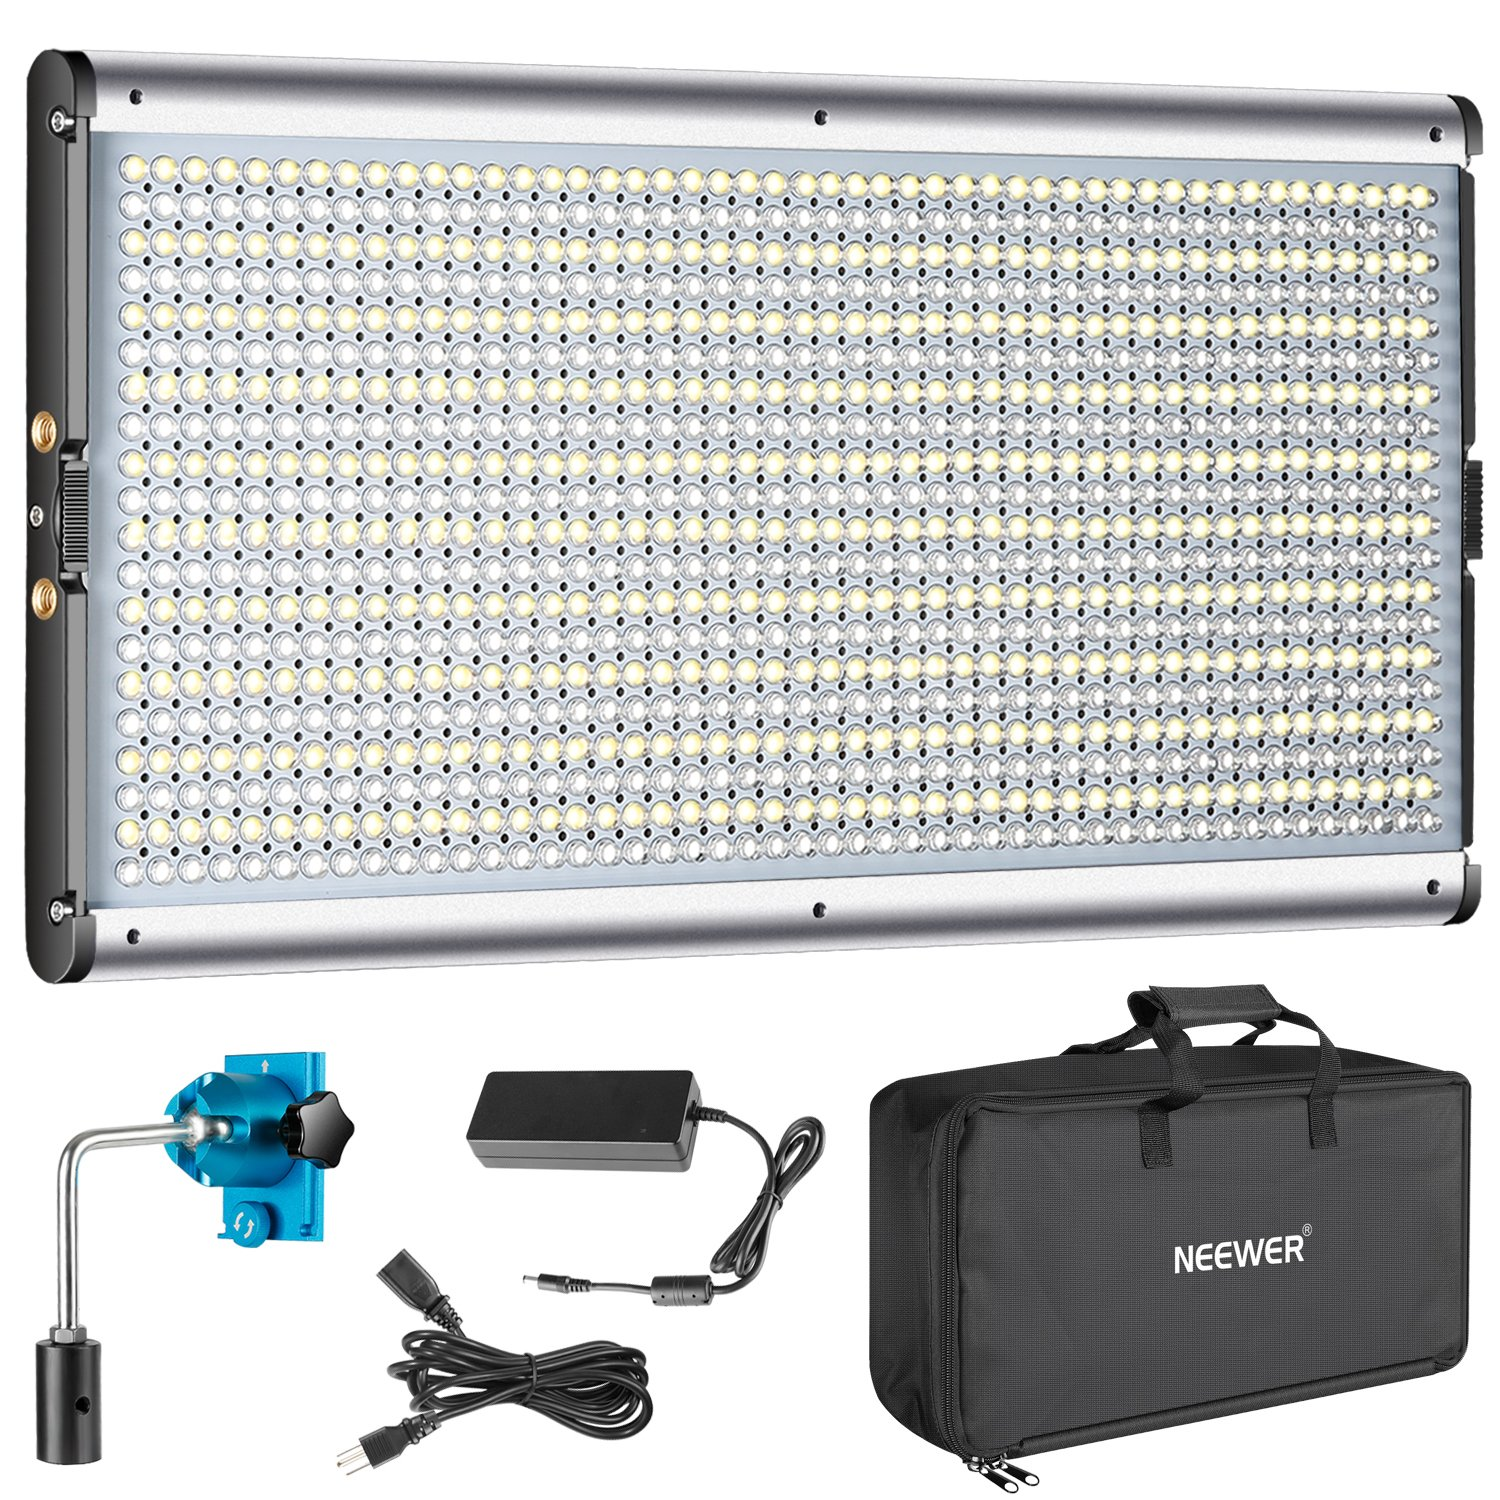 Neweer 800 LED Light Panel